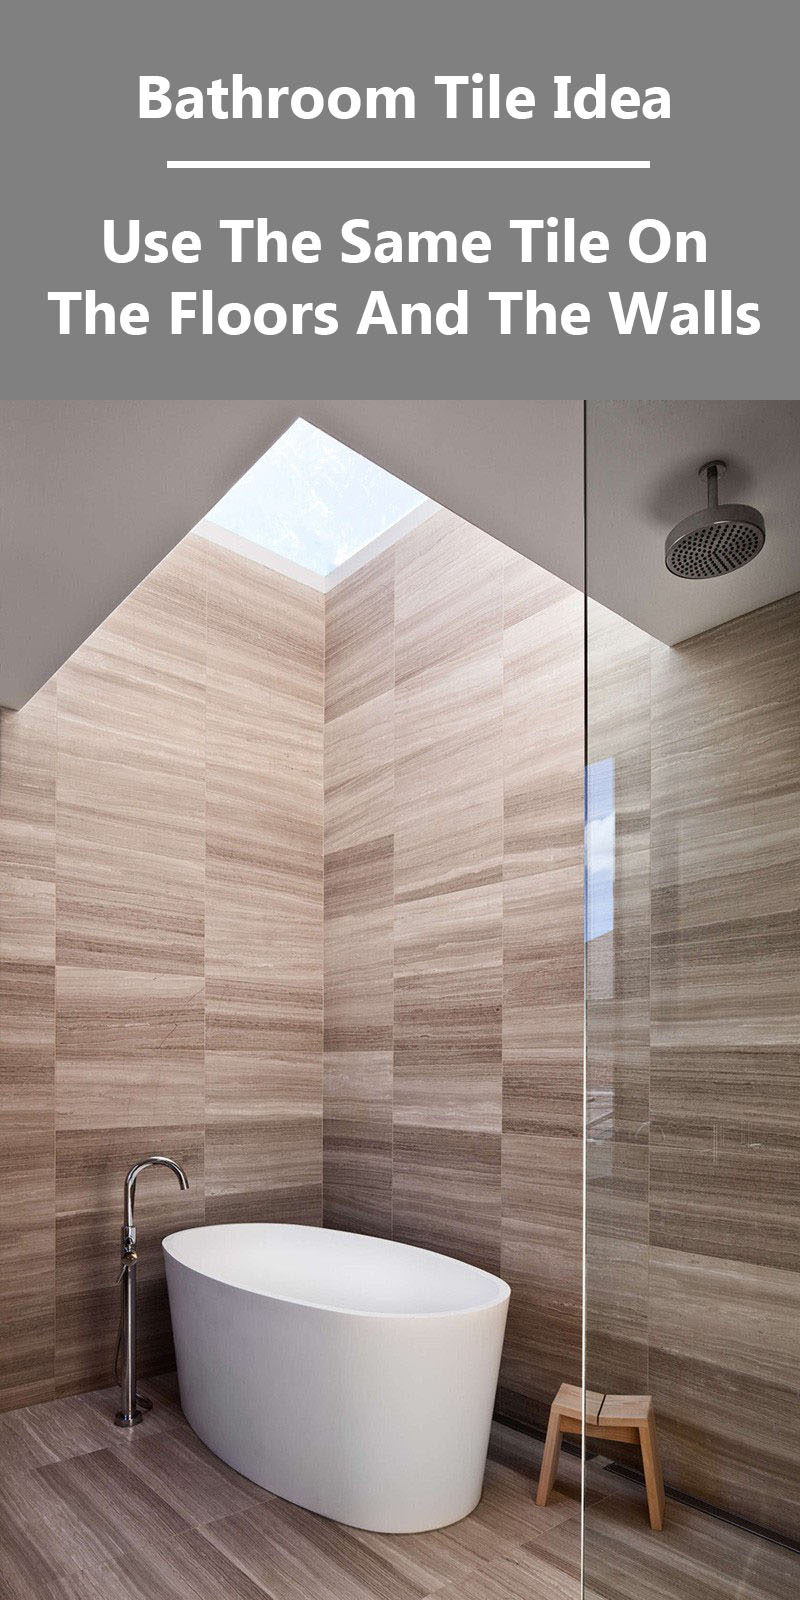 for watch bathroom replace tile strat porcelain flooring old finish floor with new bath to